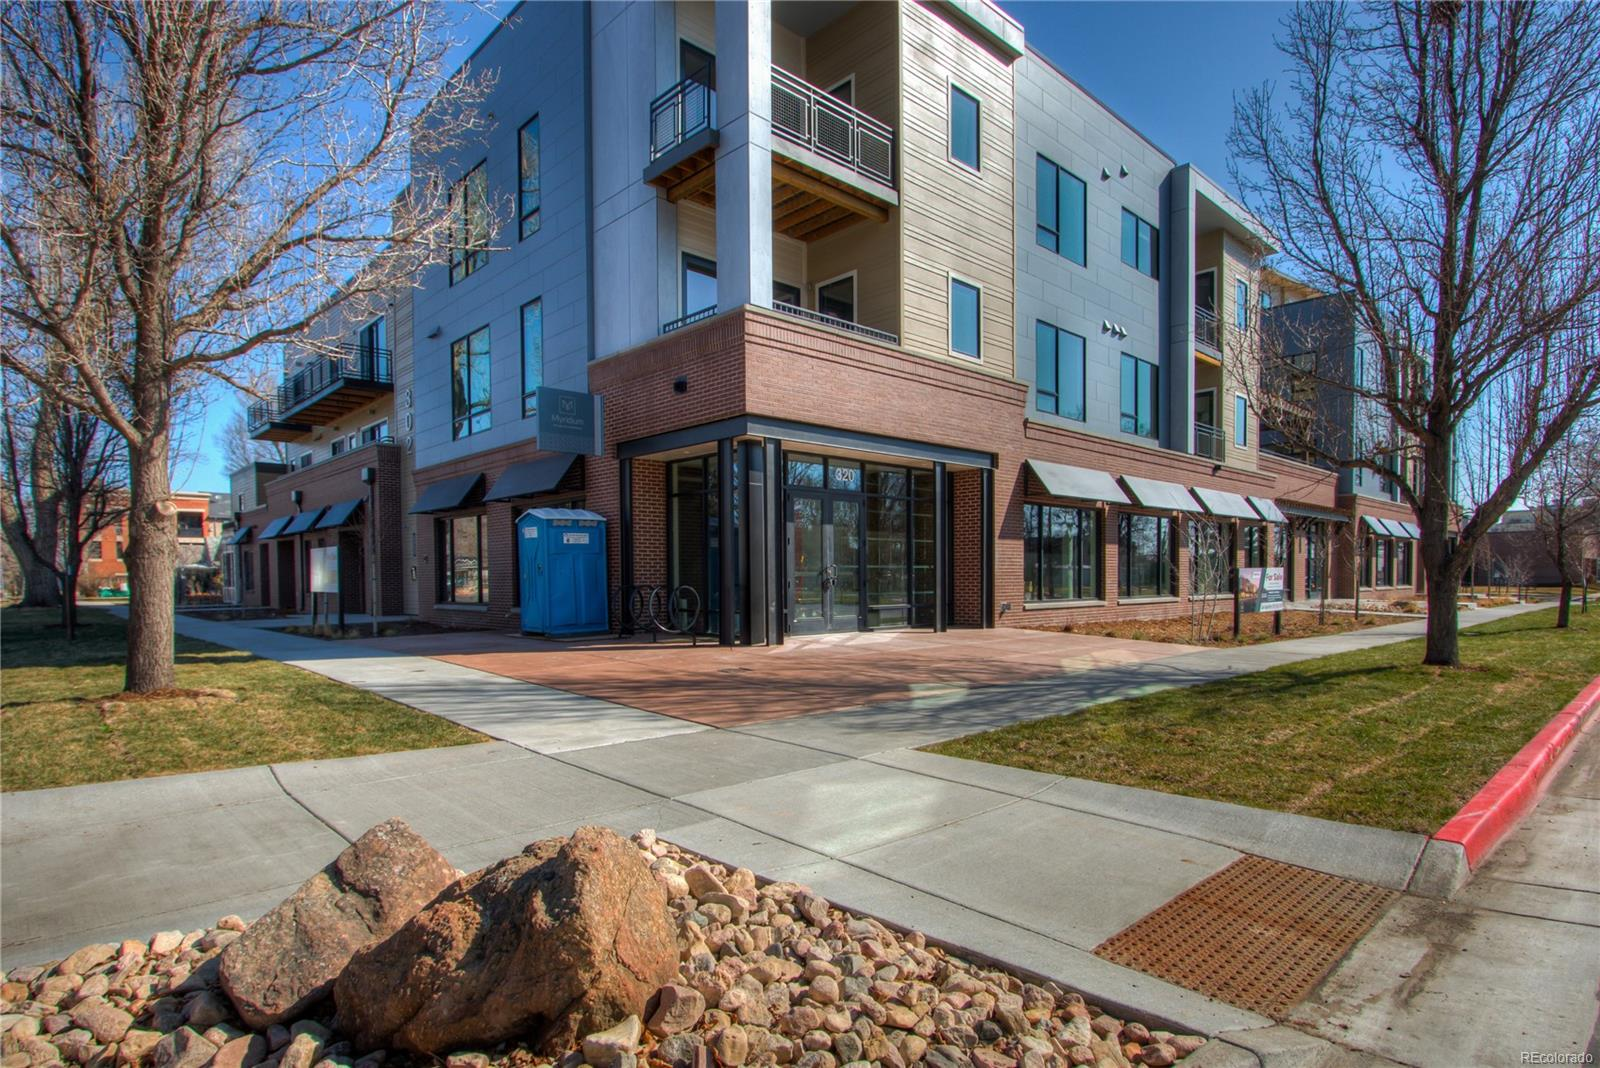 302 Meldrum Street #201, Fort Collins, CO 80521 - Fort Collins, CO real estate listing